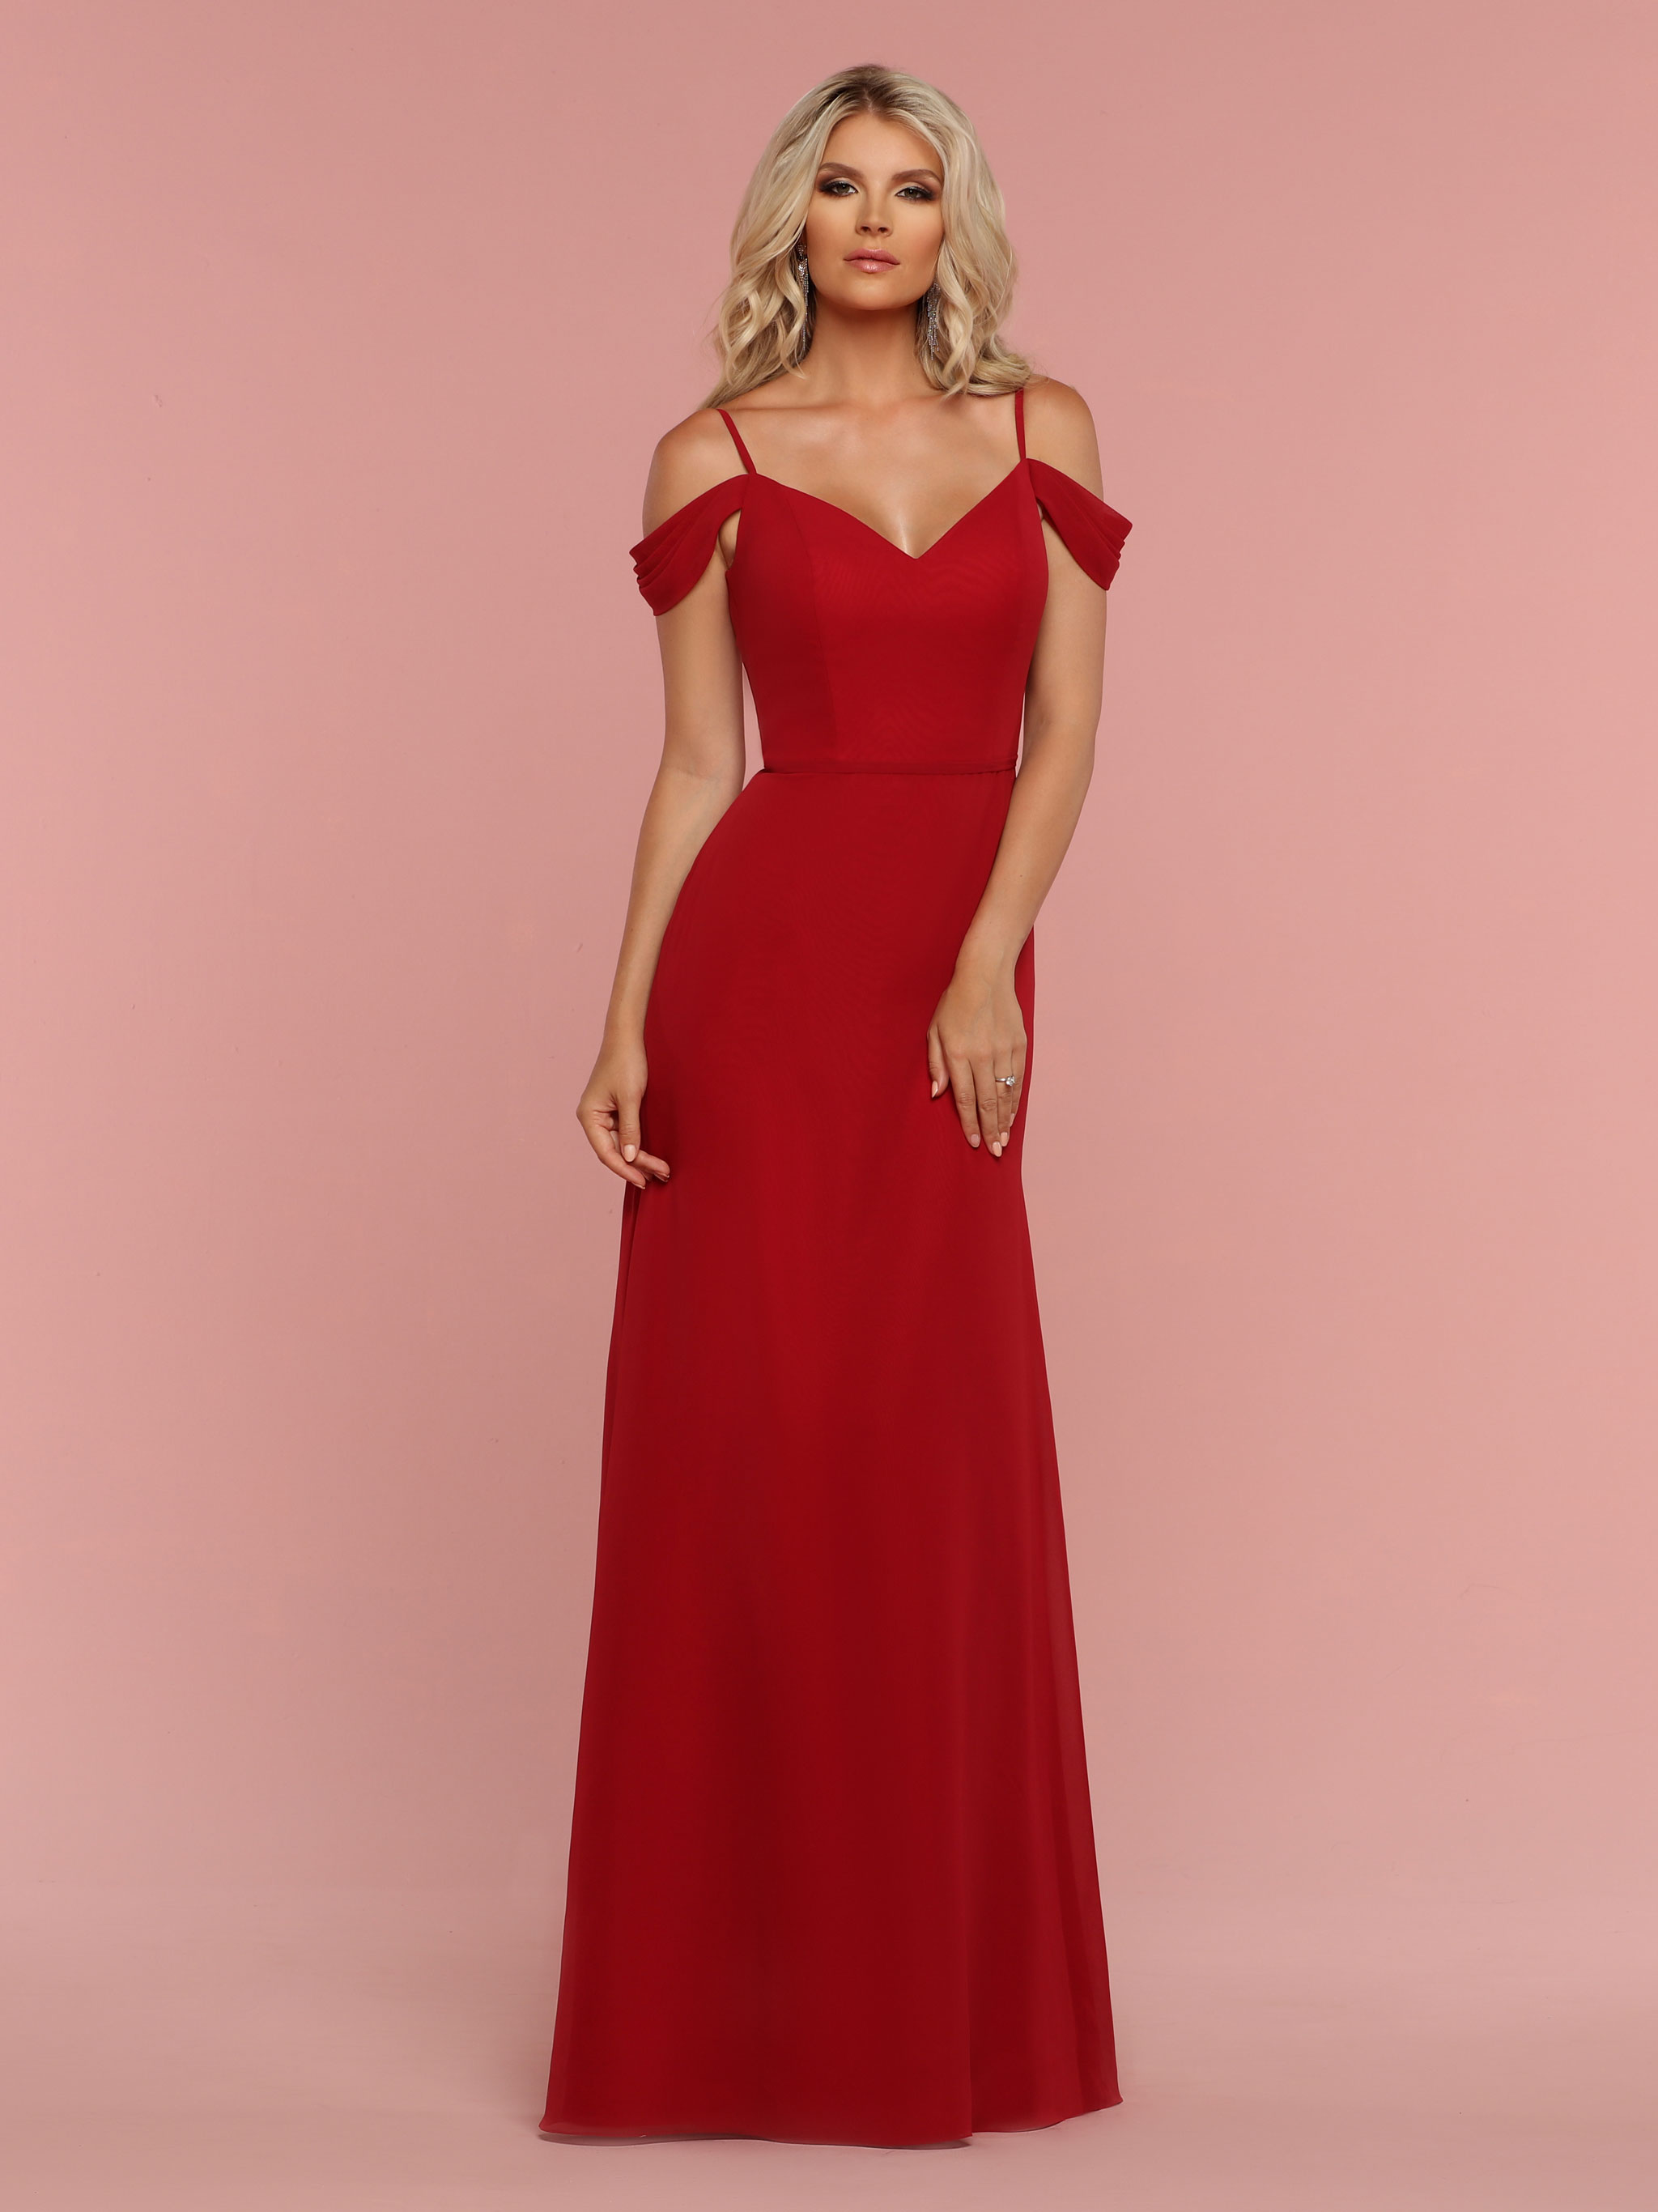 Bridesmaid dresses davinci bridal image showing front view of style 60331 ombrellifo Images